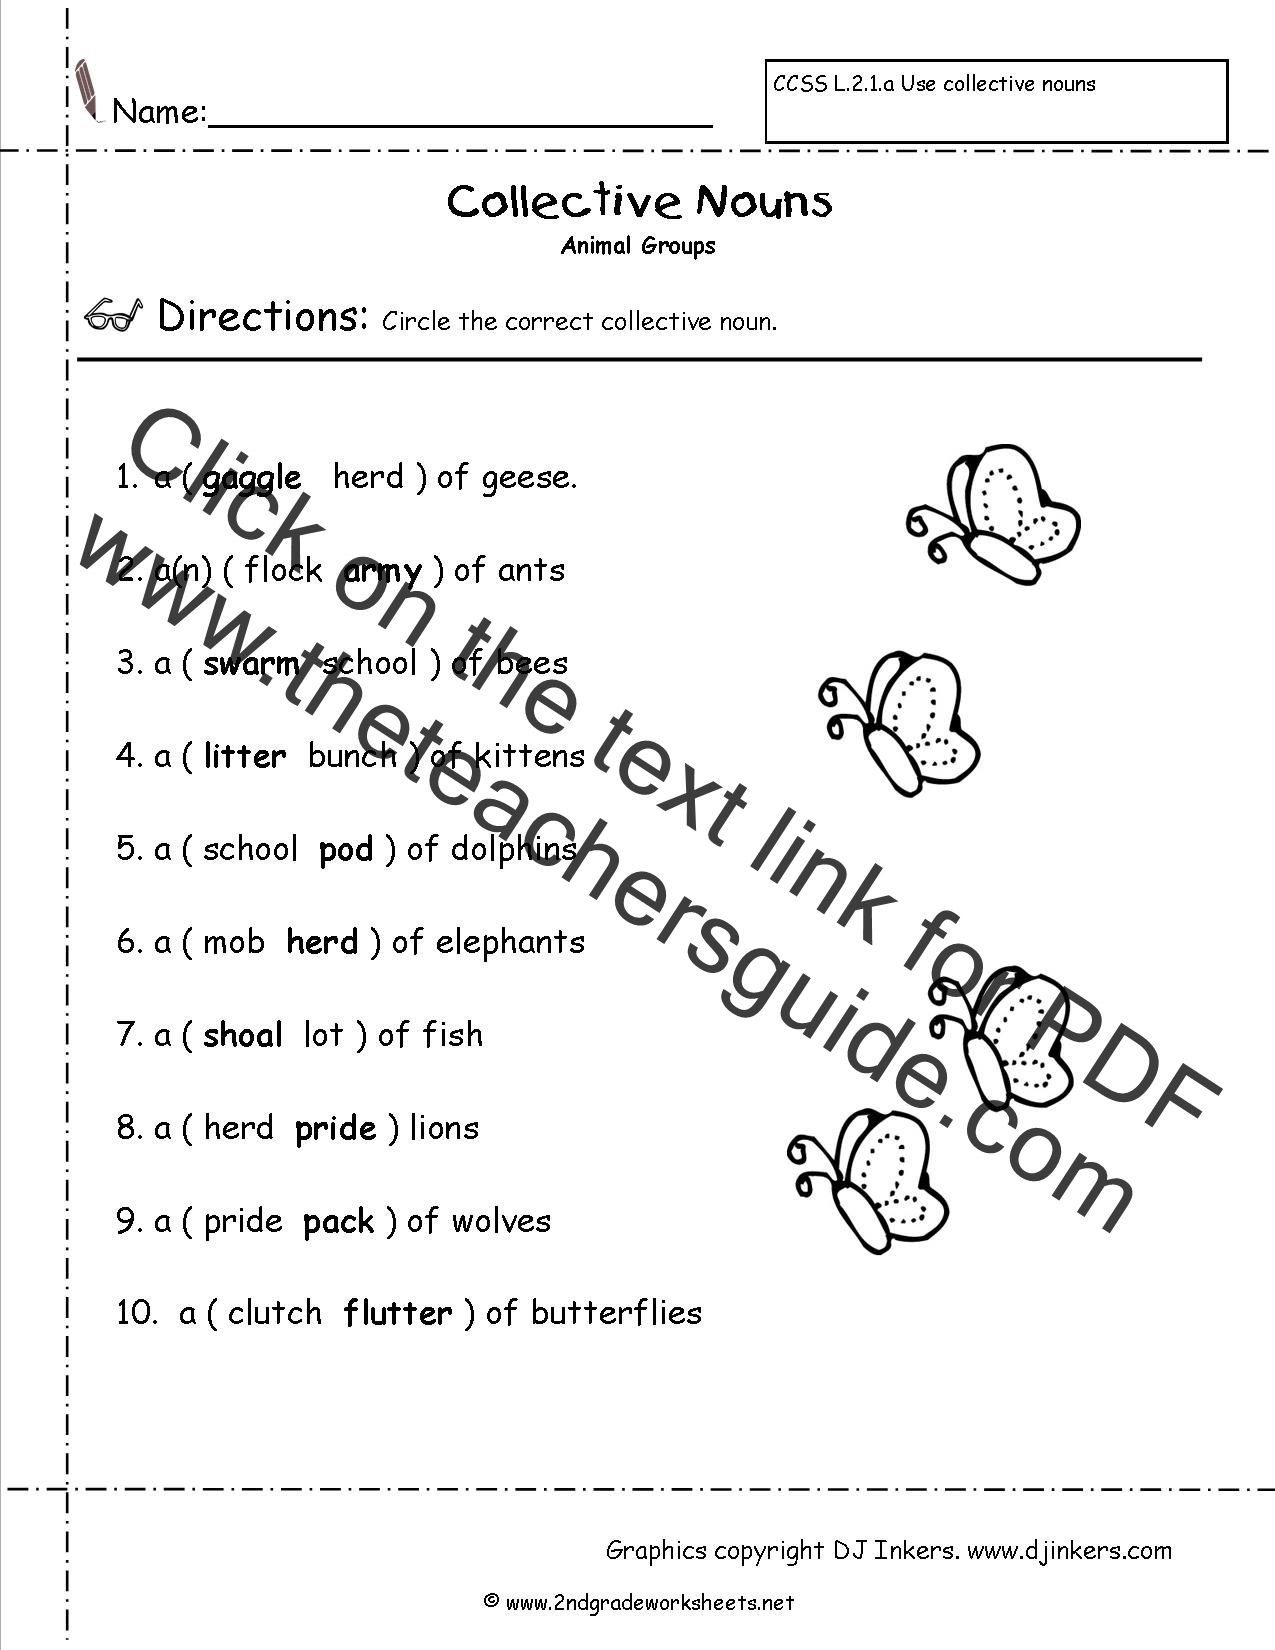 Collective Nouns Worksheet Doc